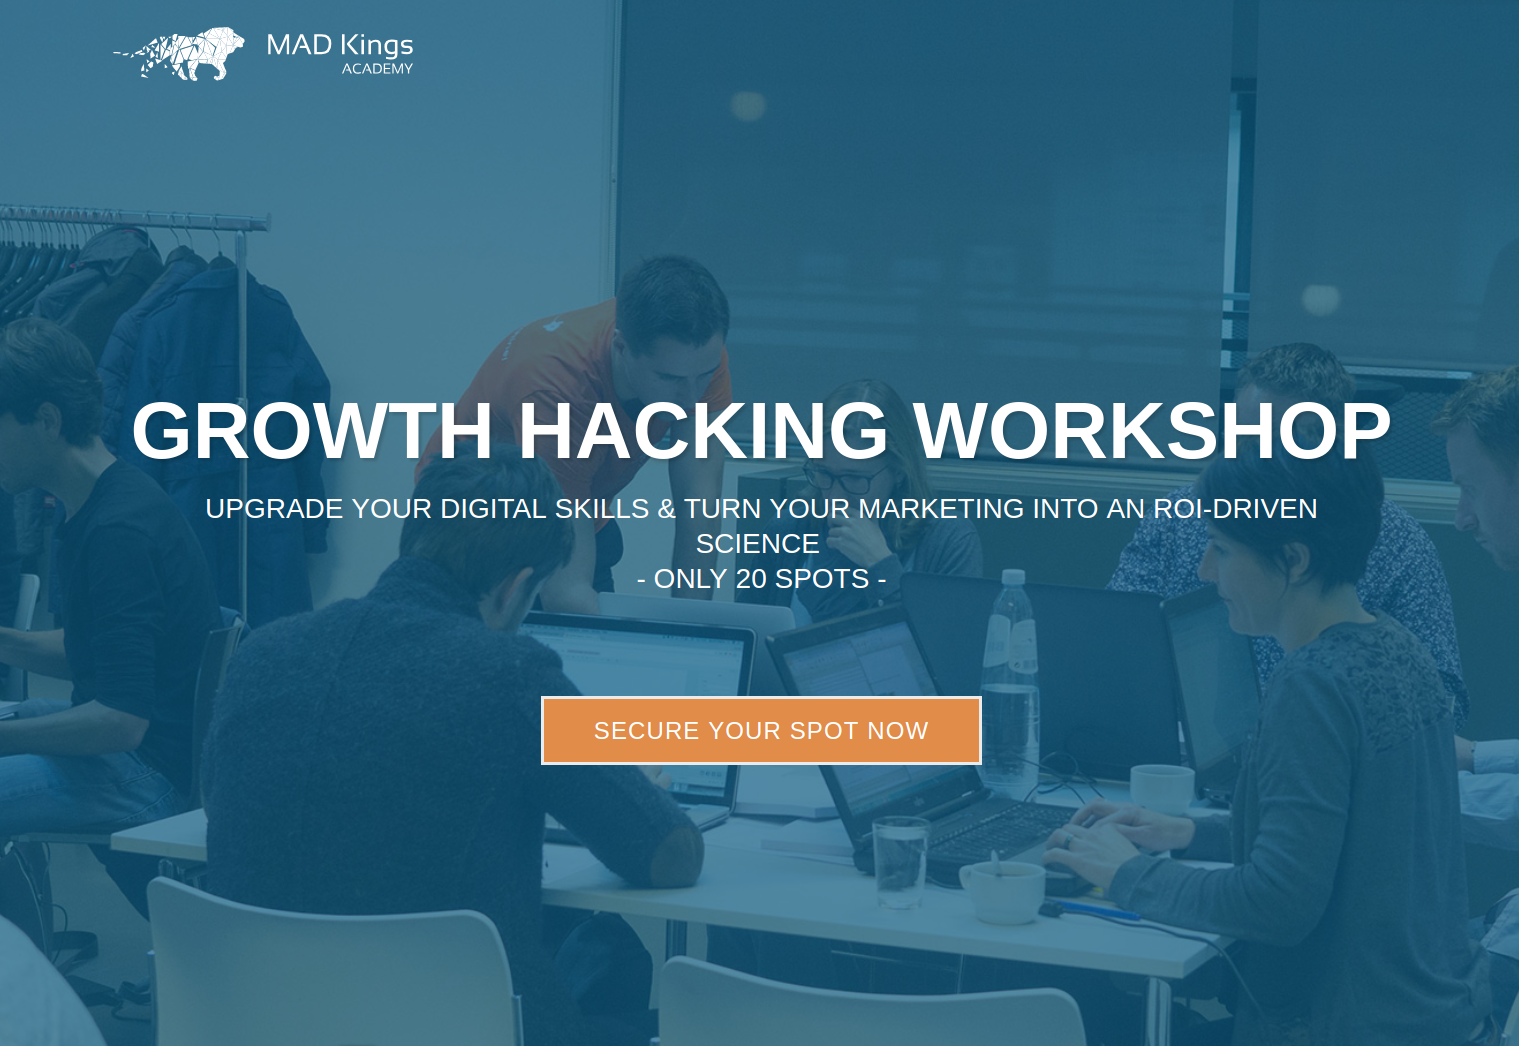 mad kings academy growth hacking workshop